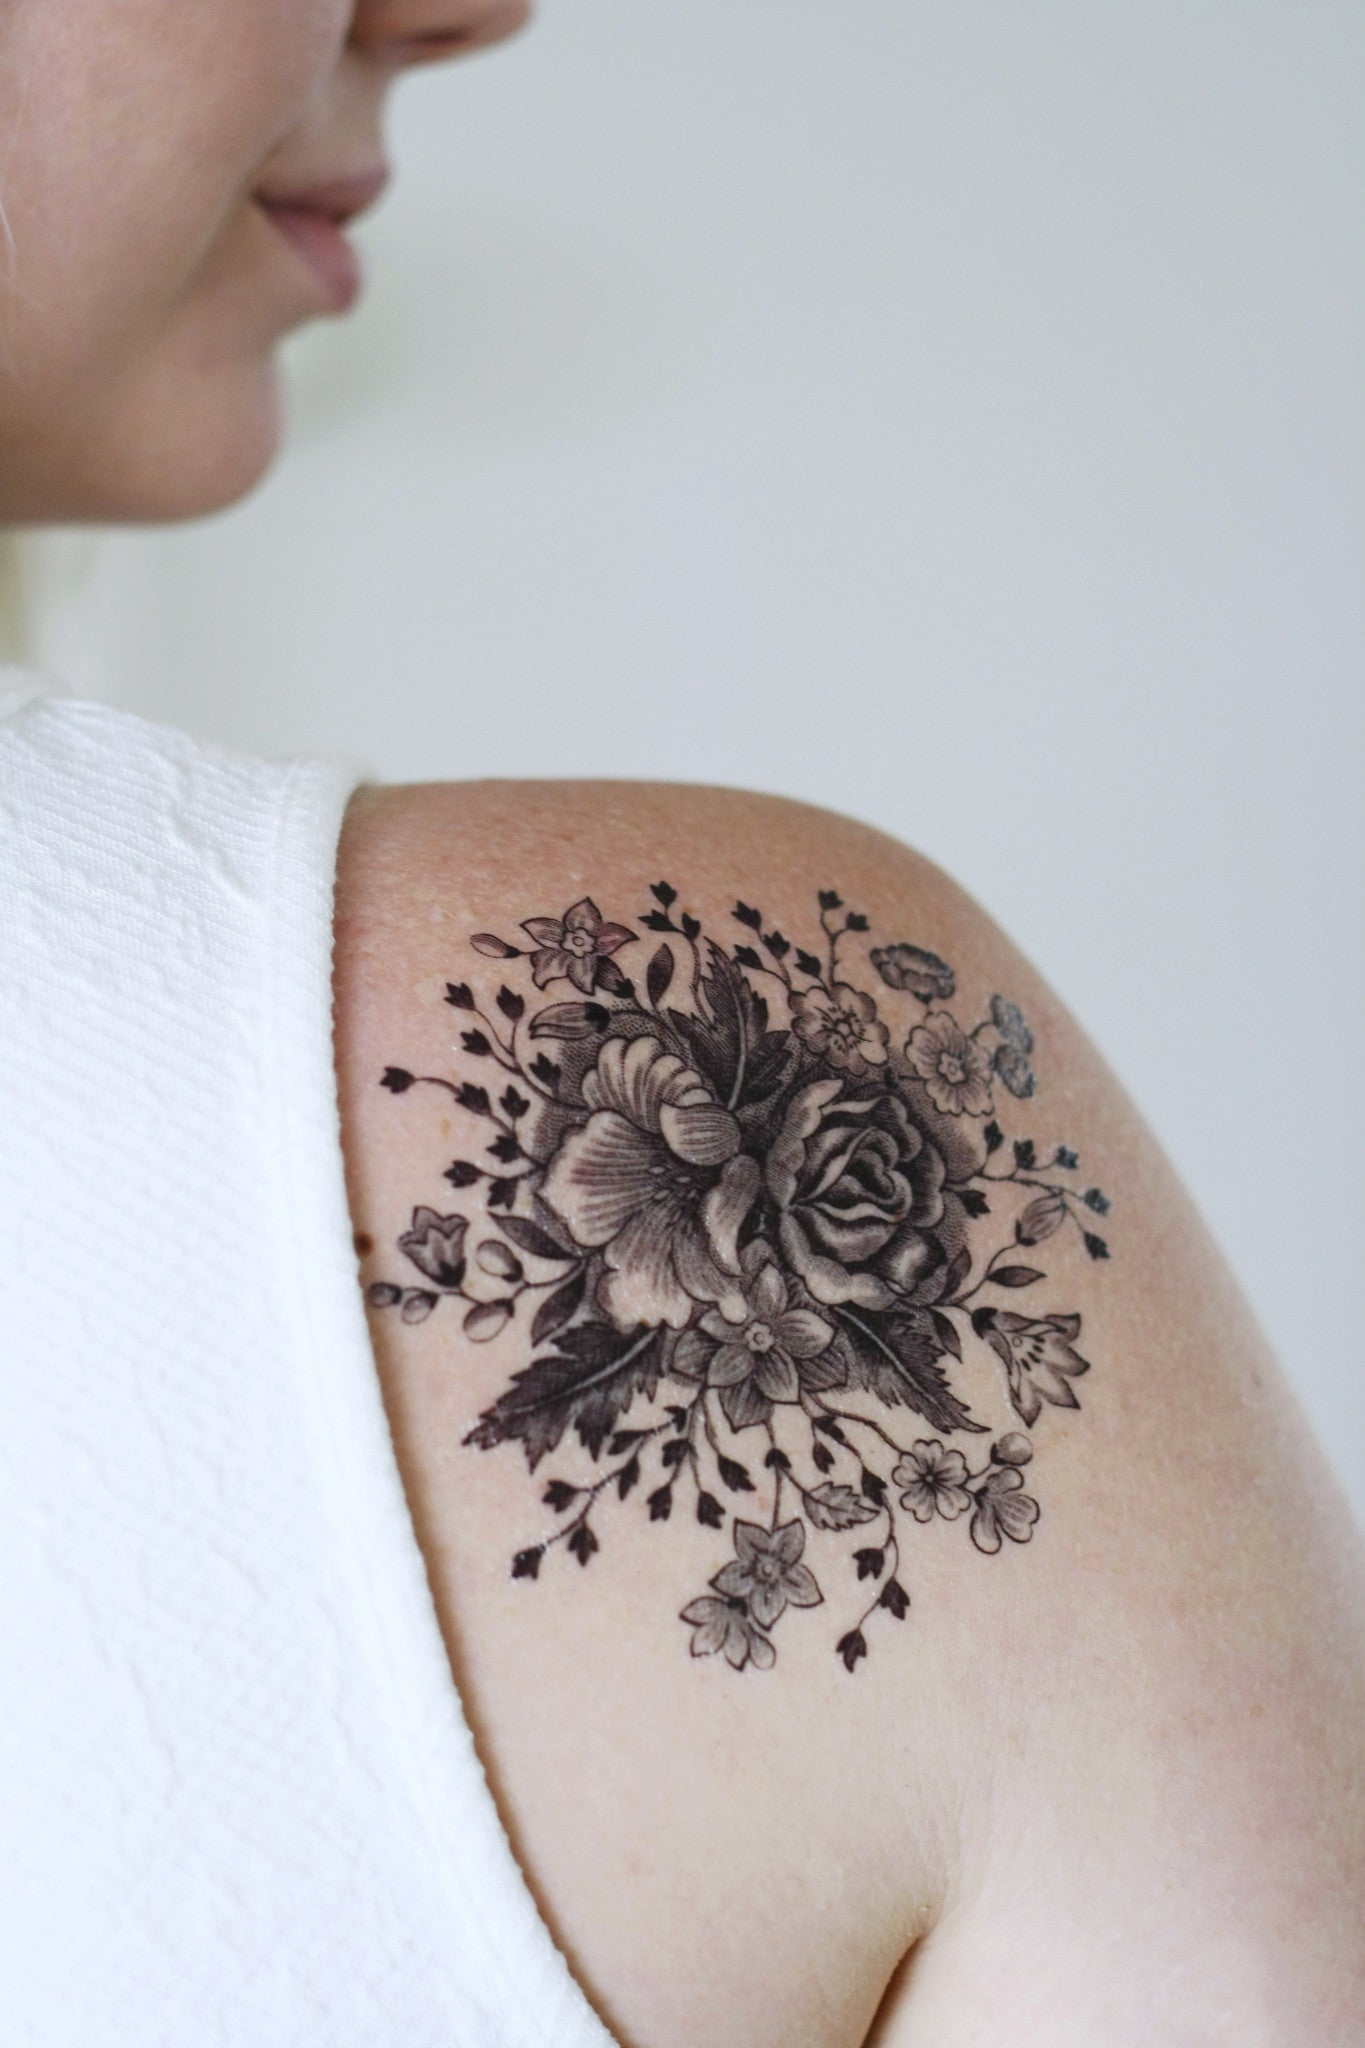 Large Vintage Black And White Floral Temporary Tattoo Temporary